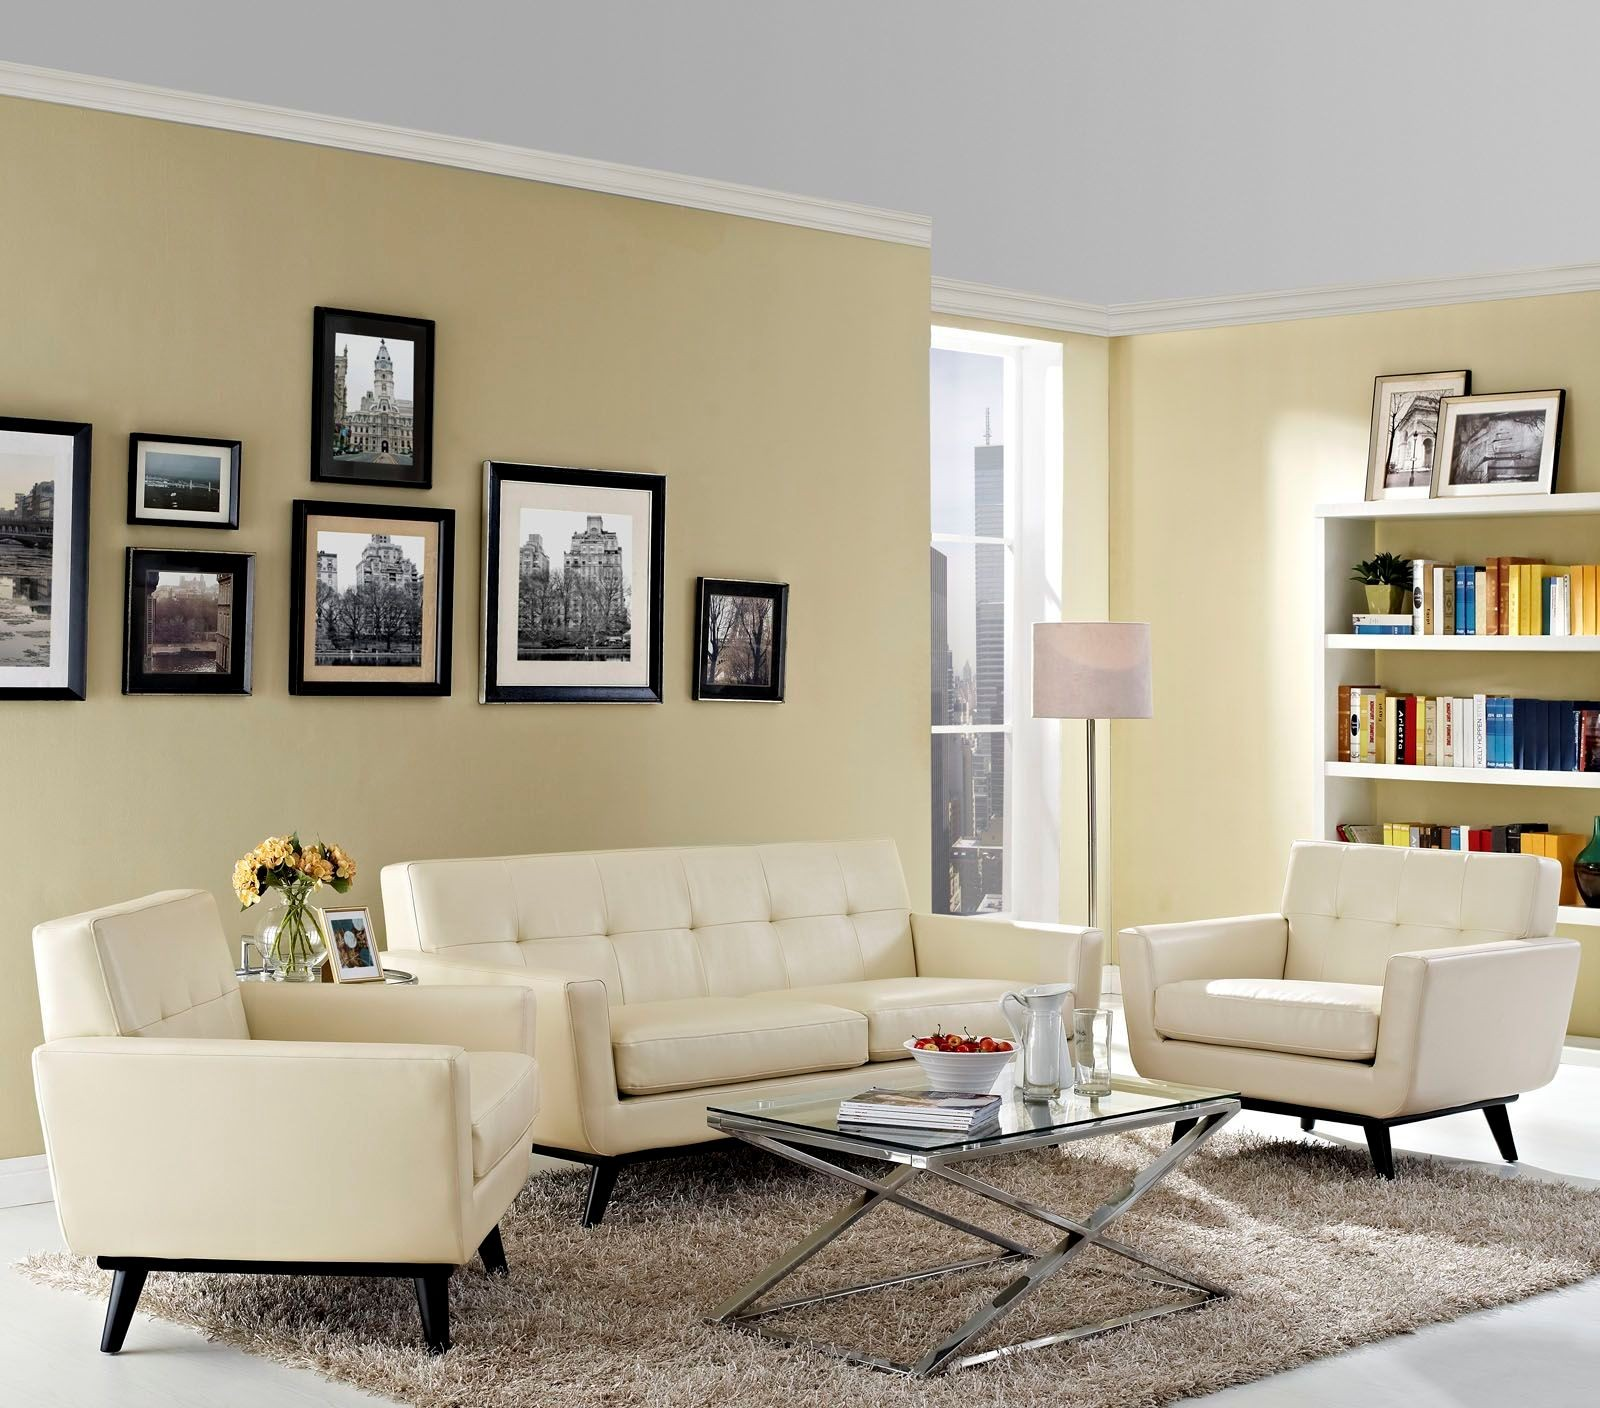 Eei 1762 bei set engage beige 3 piece leather living room for 3 piece living room set